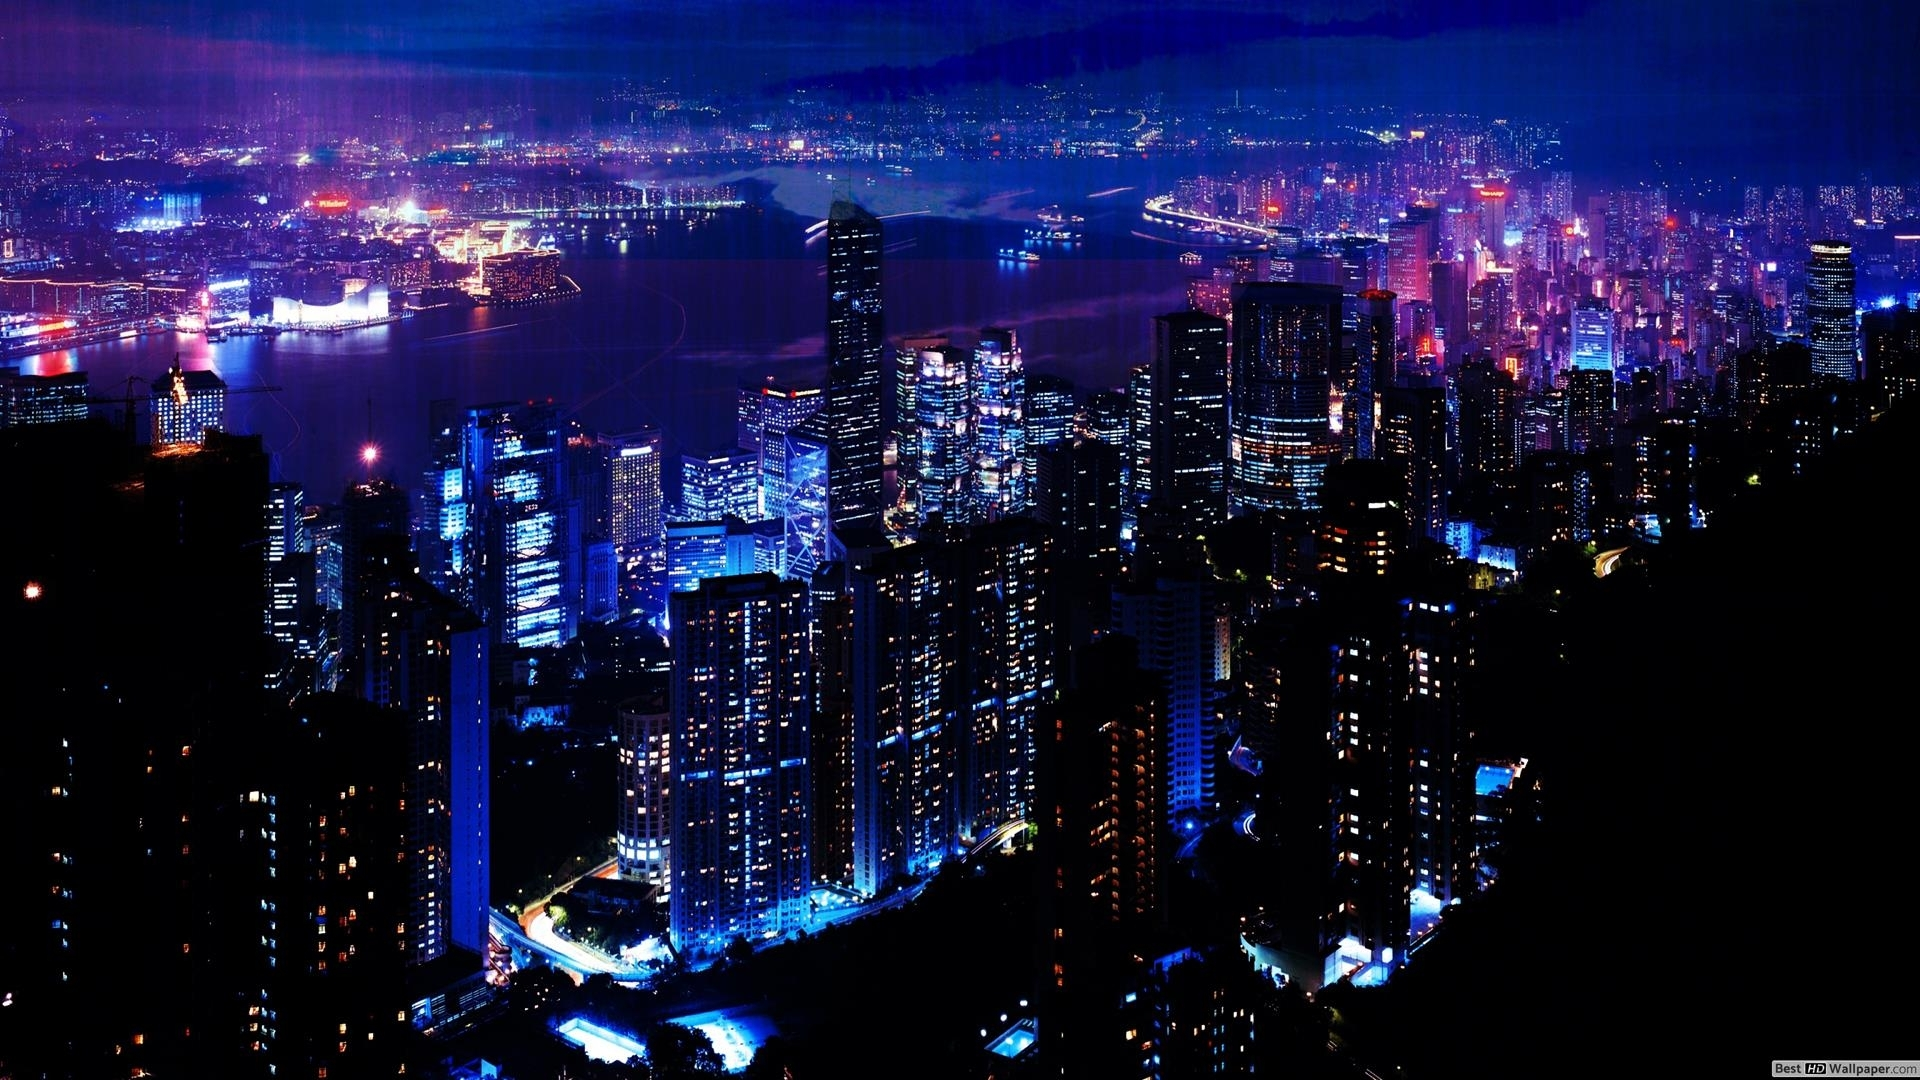 city night hd wallpaper download